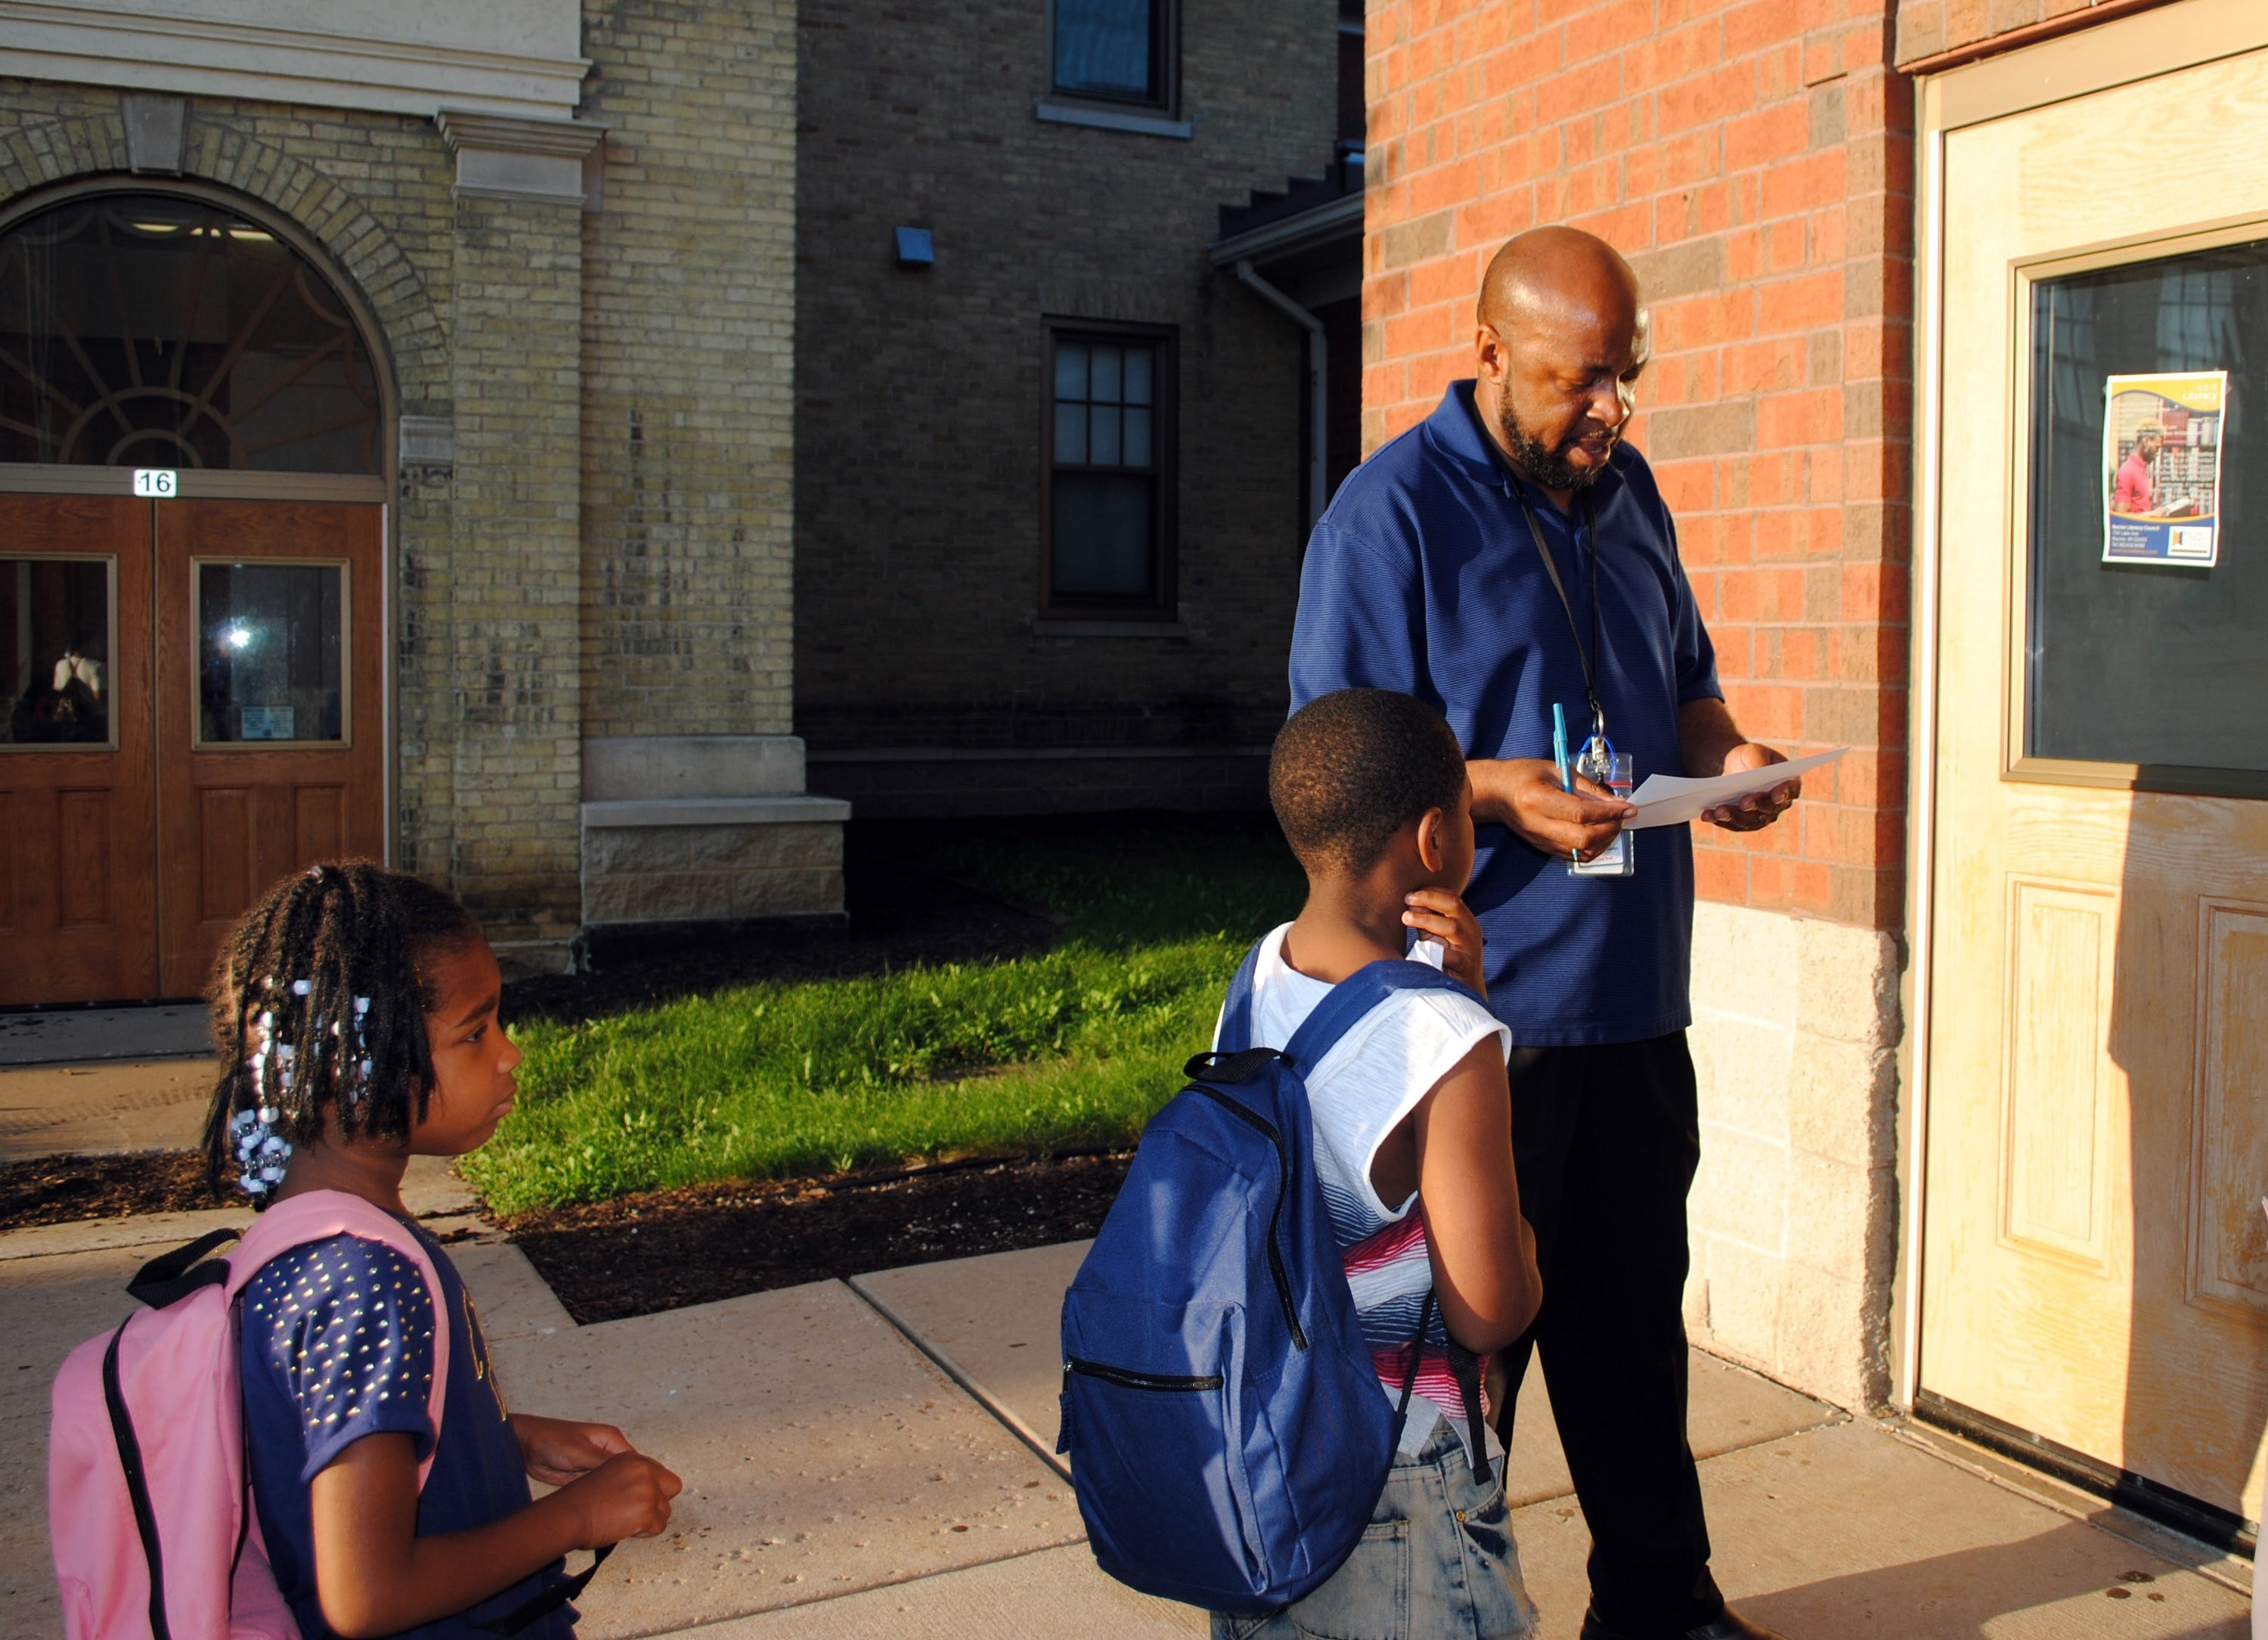 Edward Lawson checks to see if a student is on the list to enter the before-school activities program at Julian Thomas Elementary School in Racine, Wisconsin.